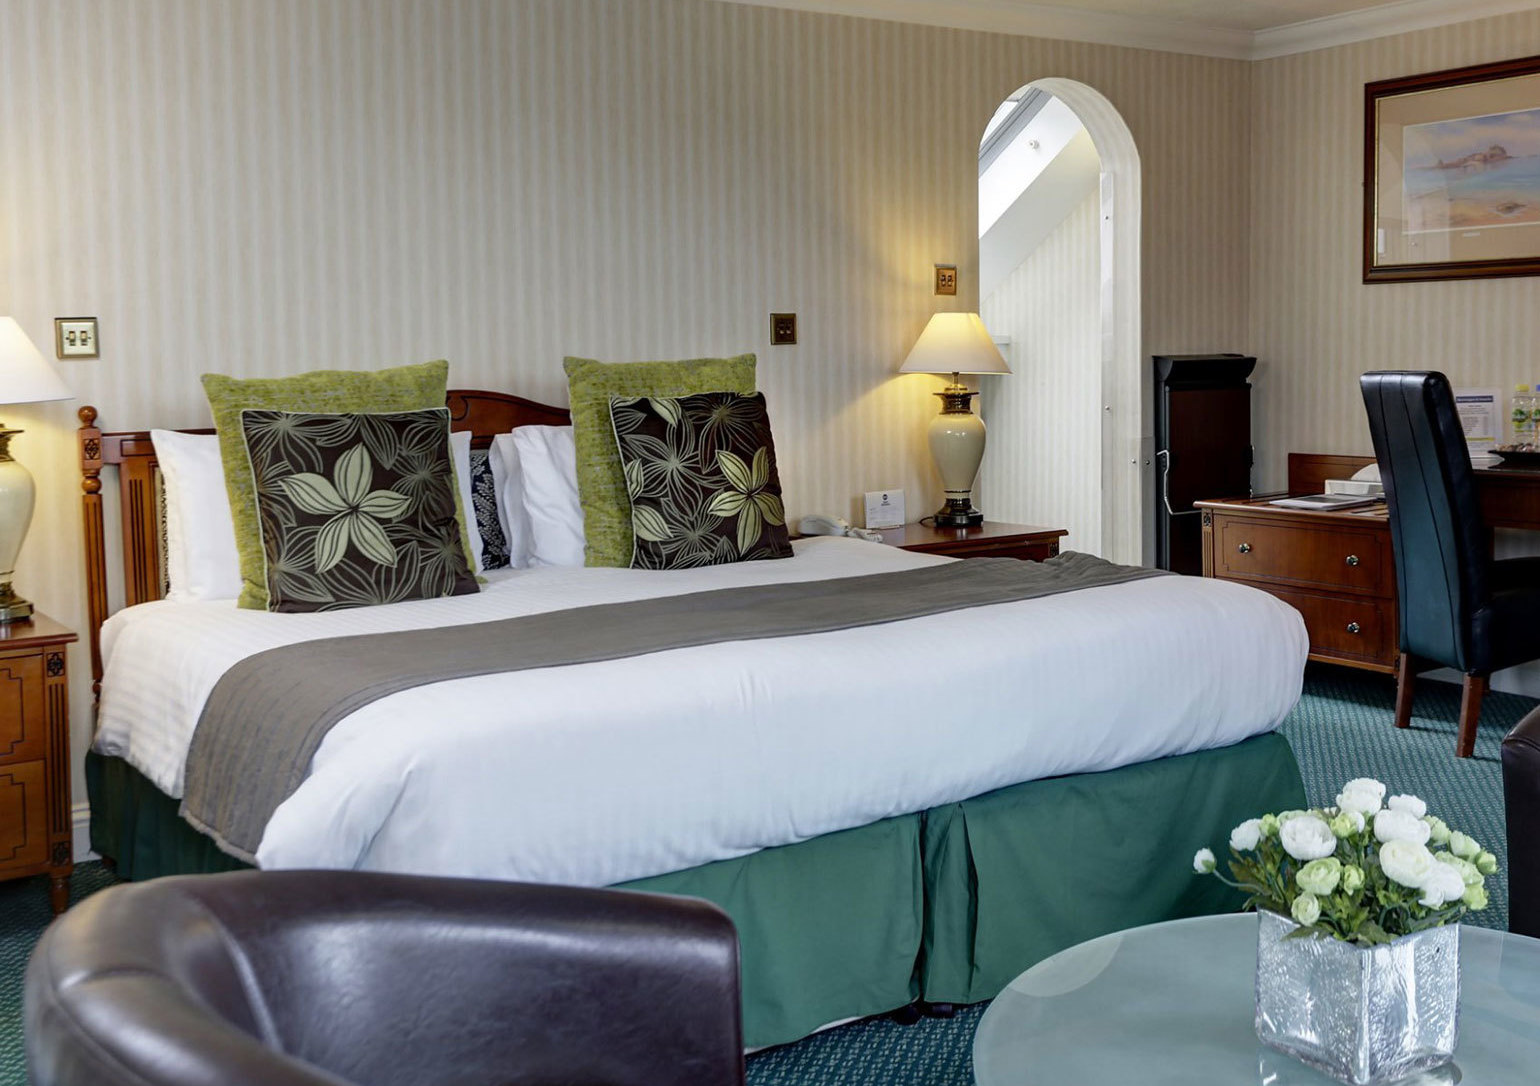 Get £10 Extra When Using Your Spend Local Card at Best Western